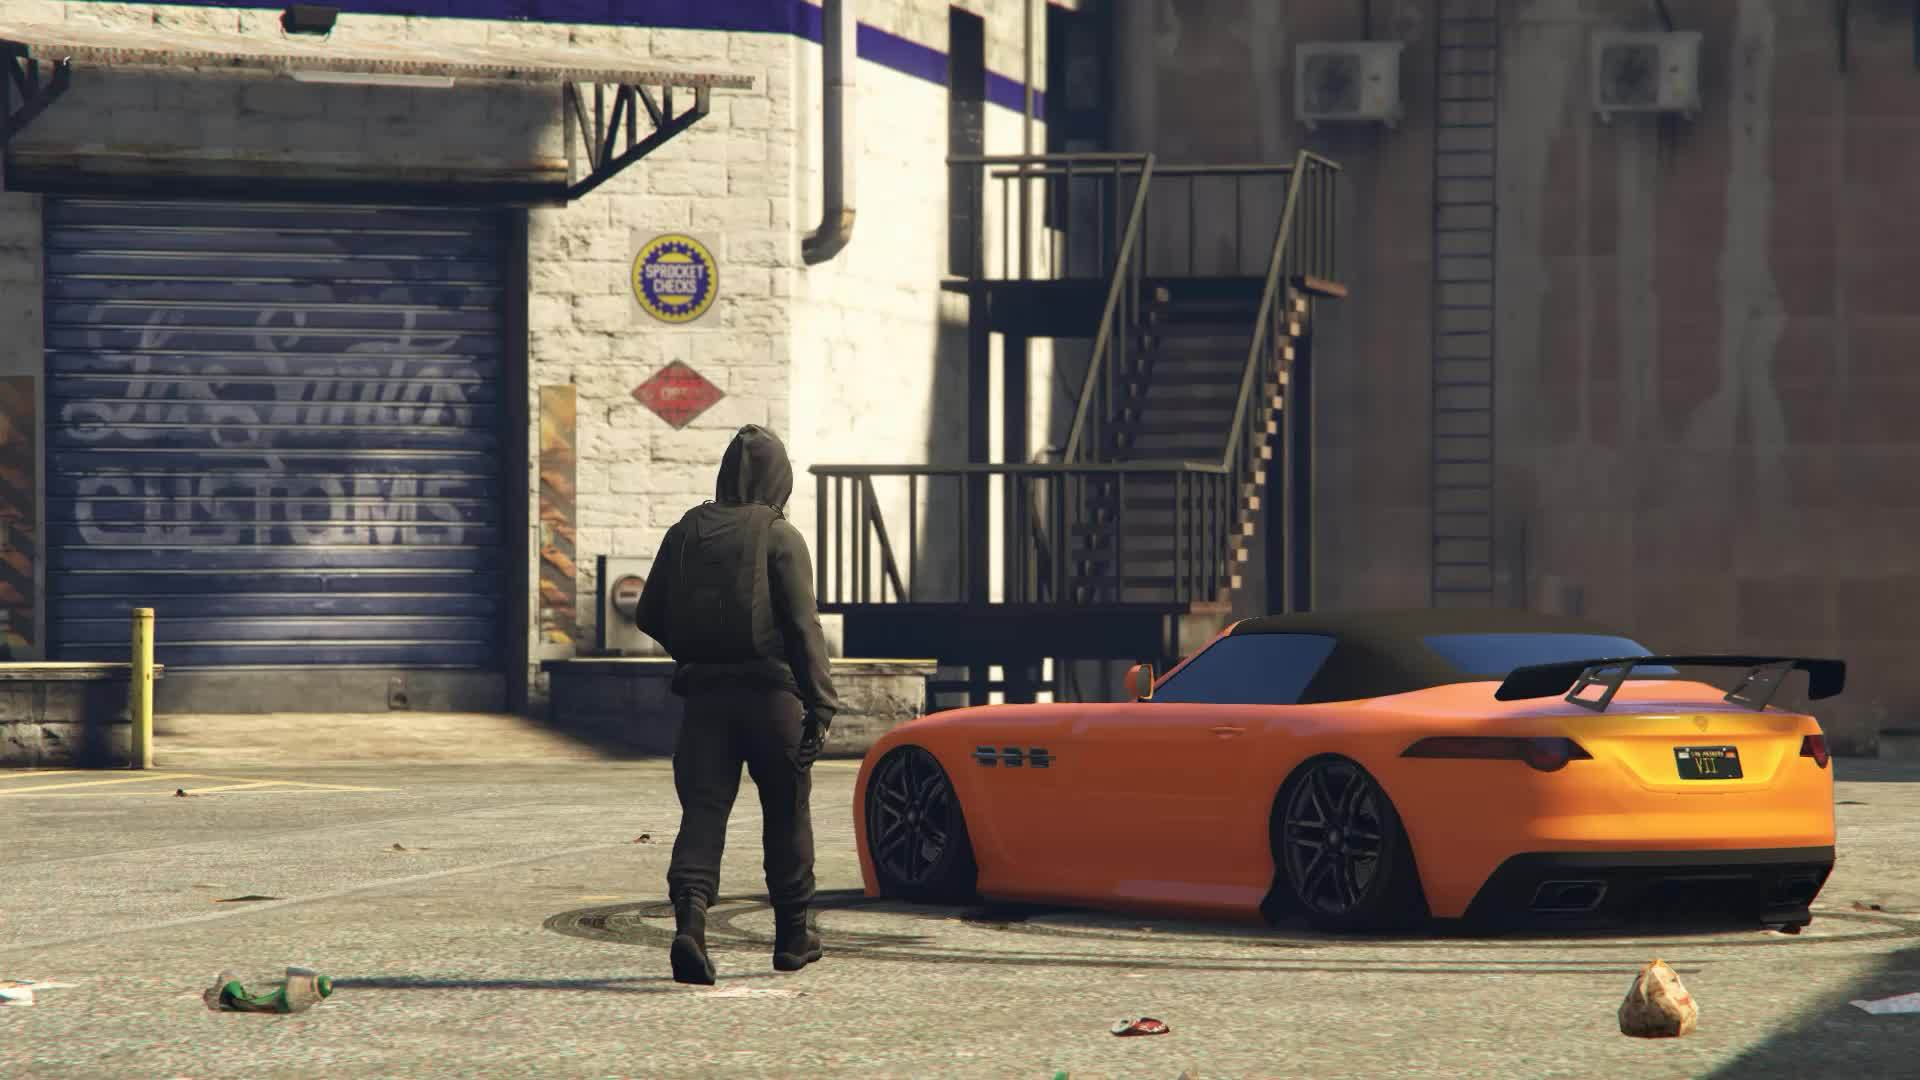 gtavcustoms, How to tell when your car is too low... (reddit) GIFs